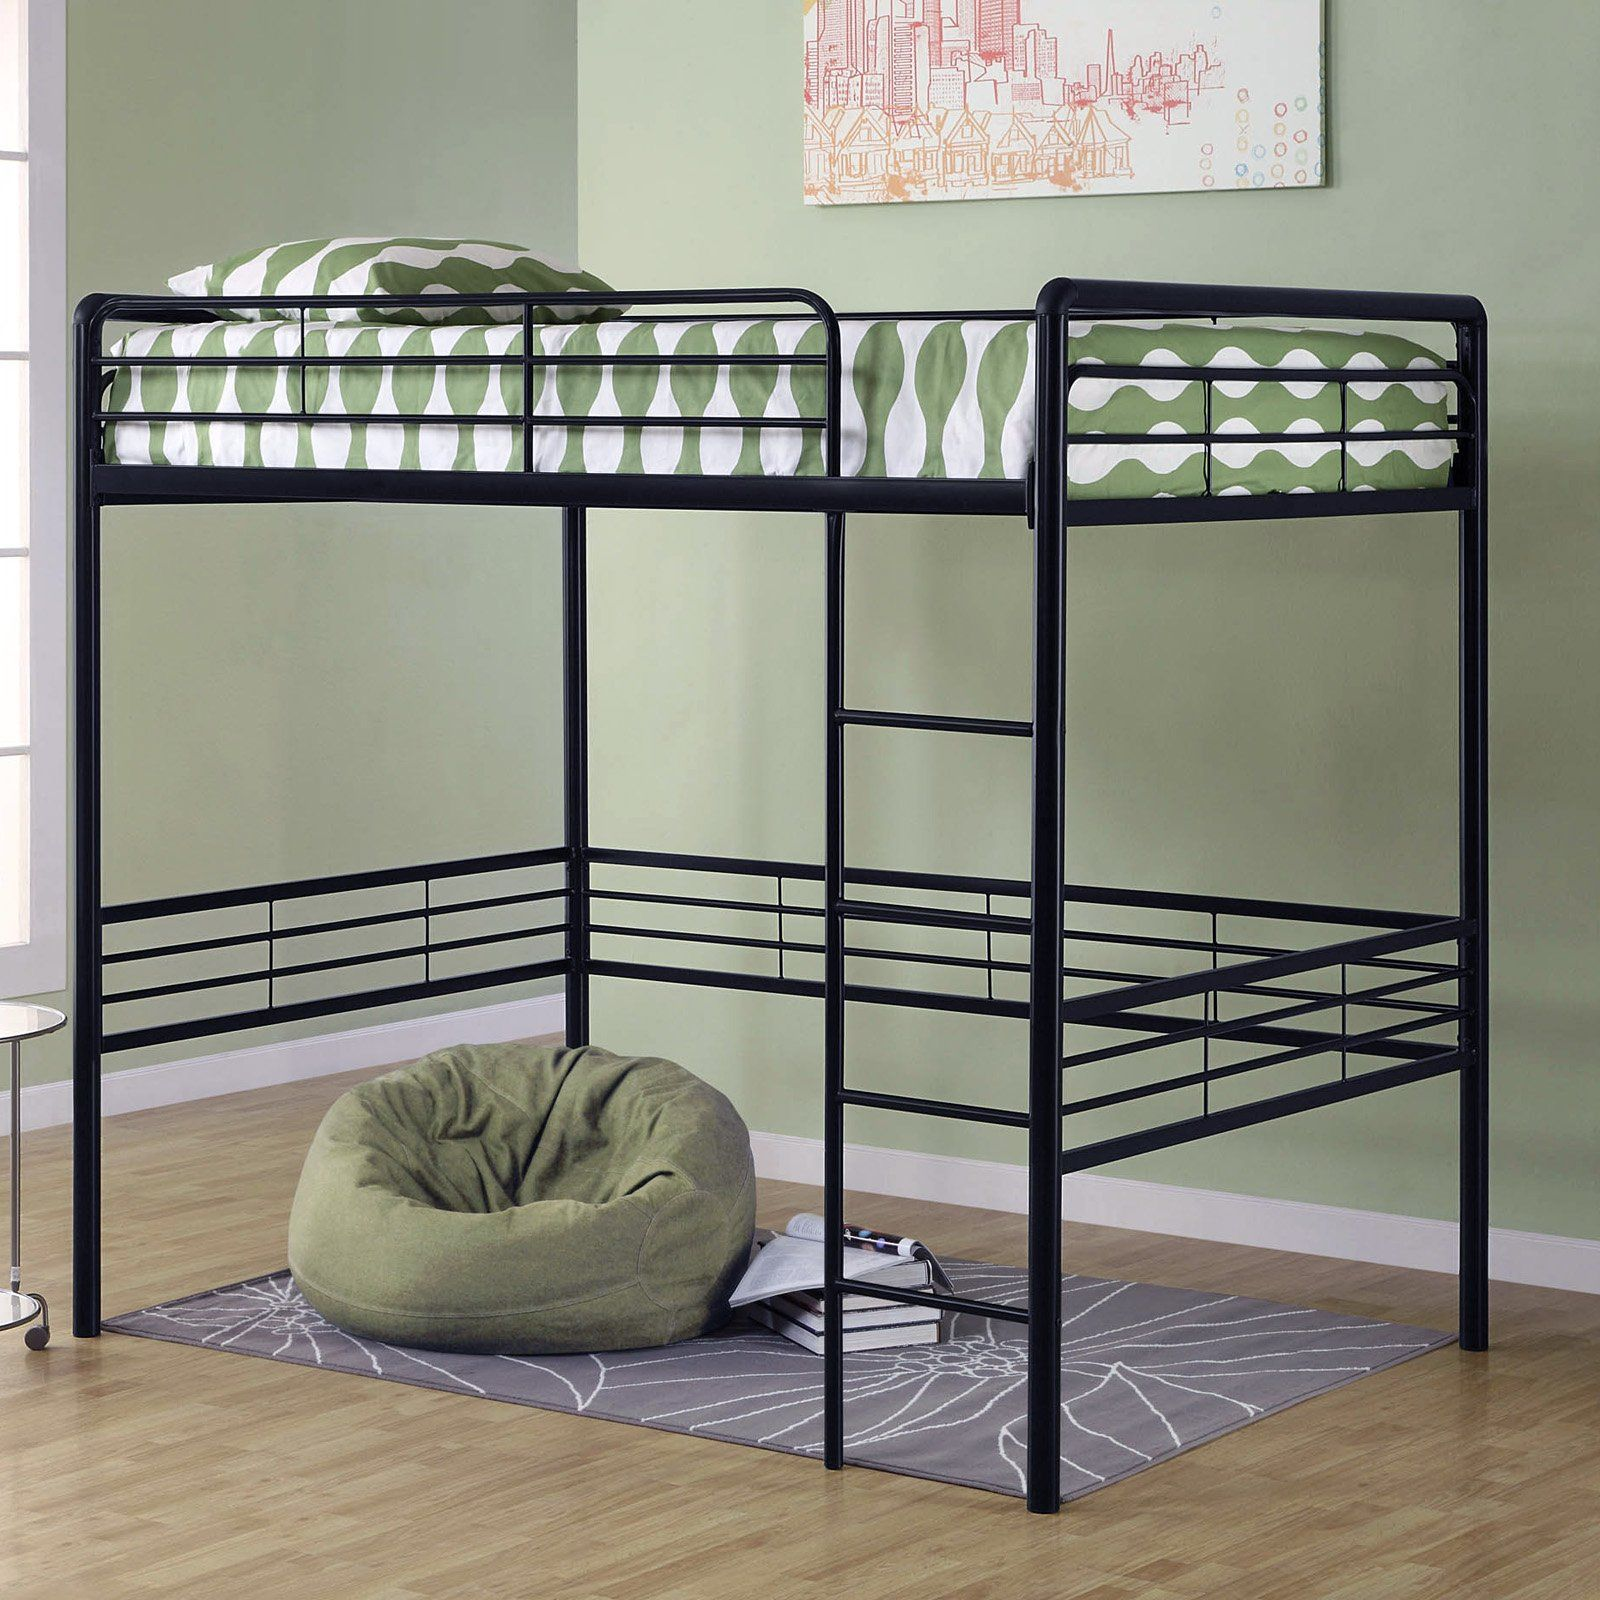 Loft bed ideas for girls  Have to have it Dorel Home Gates Full Loft   hayneedle